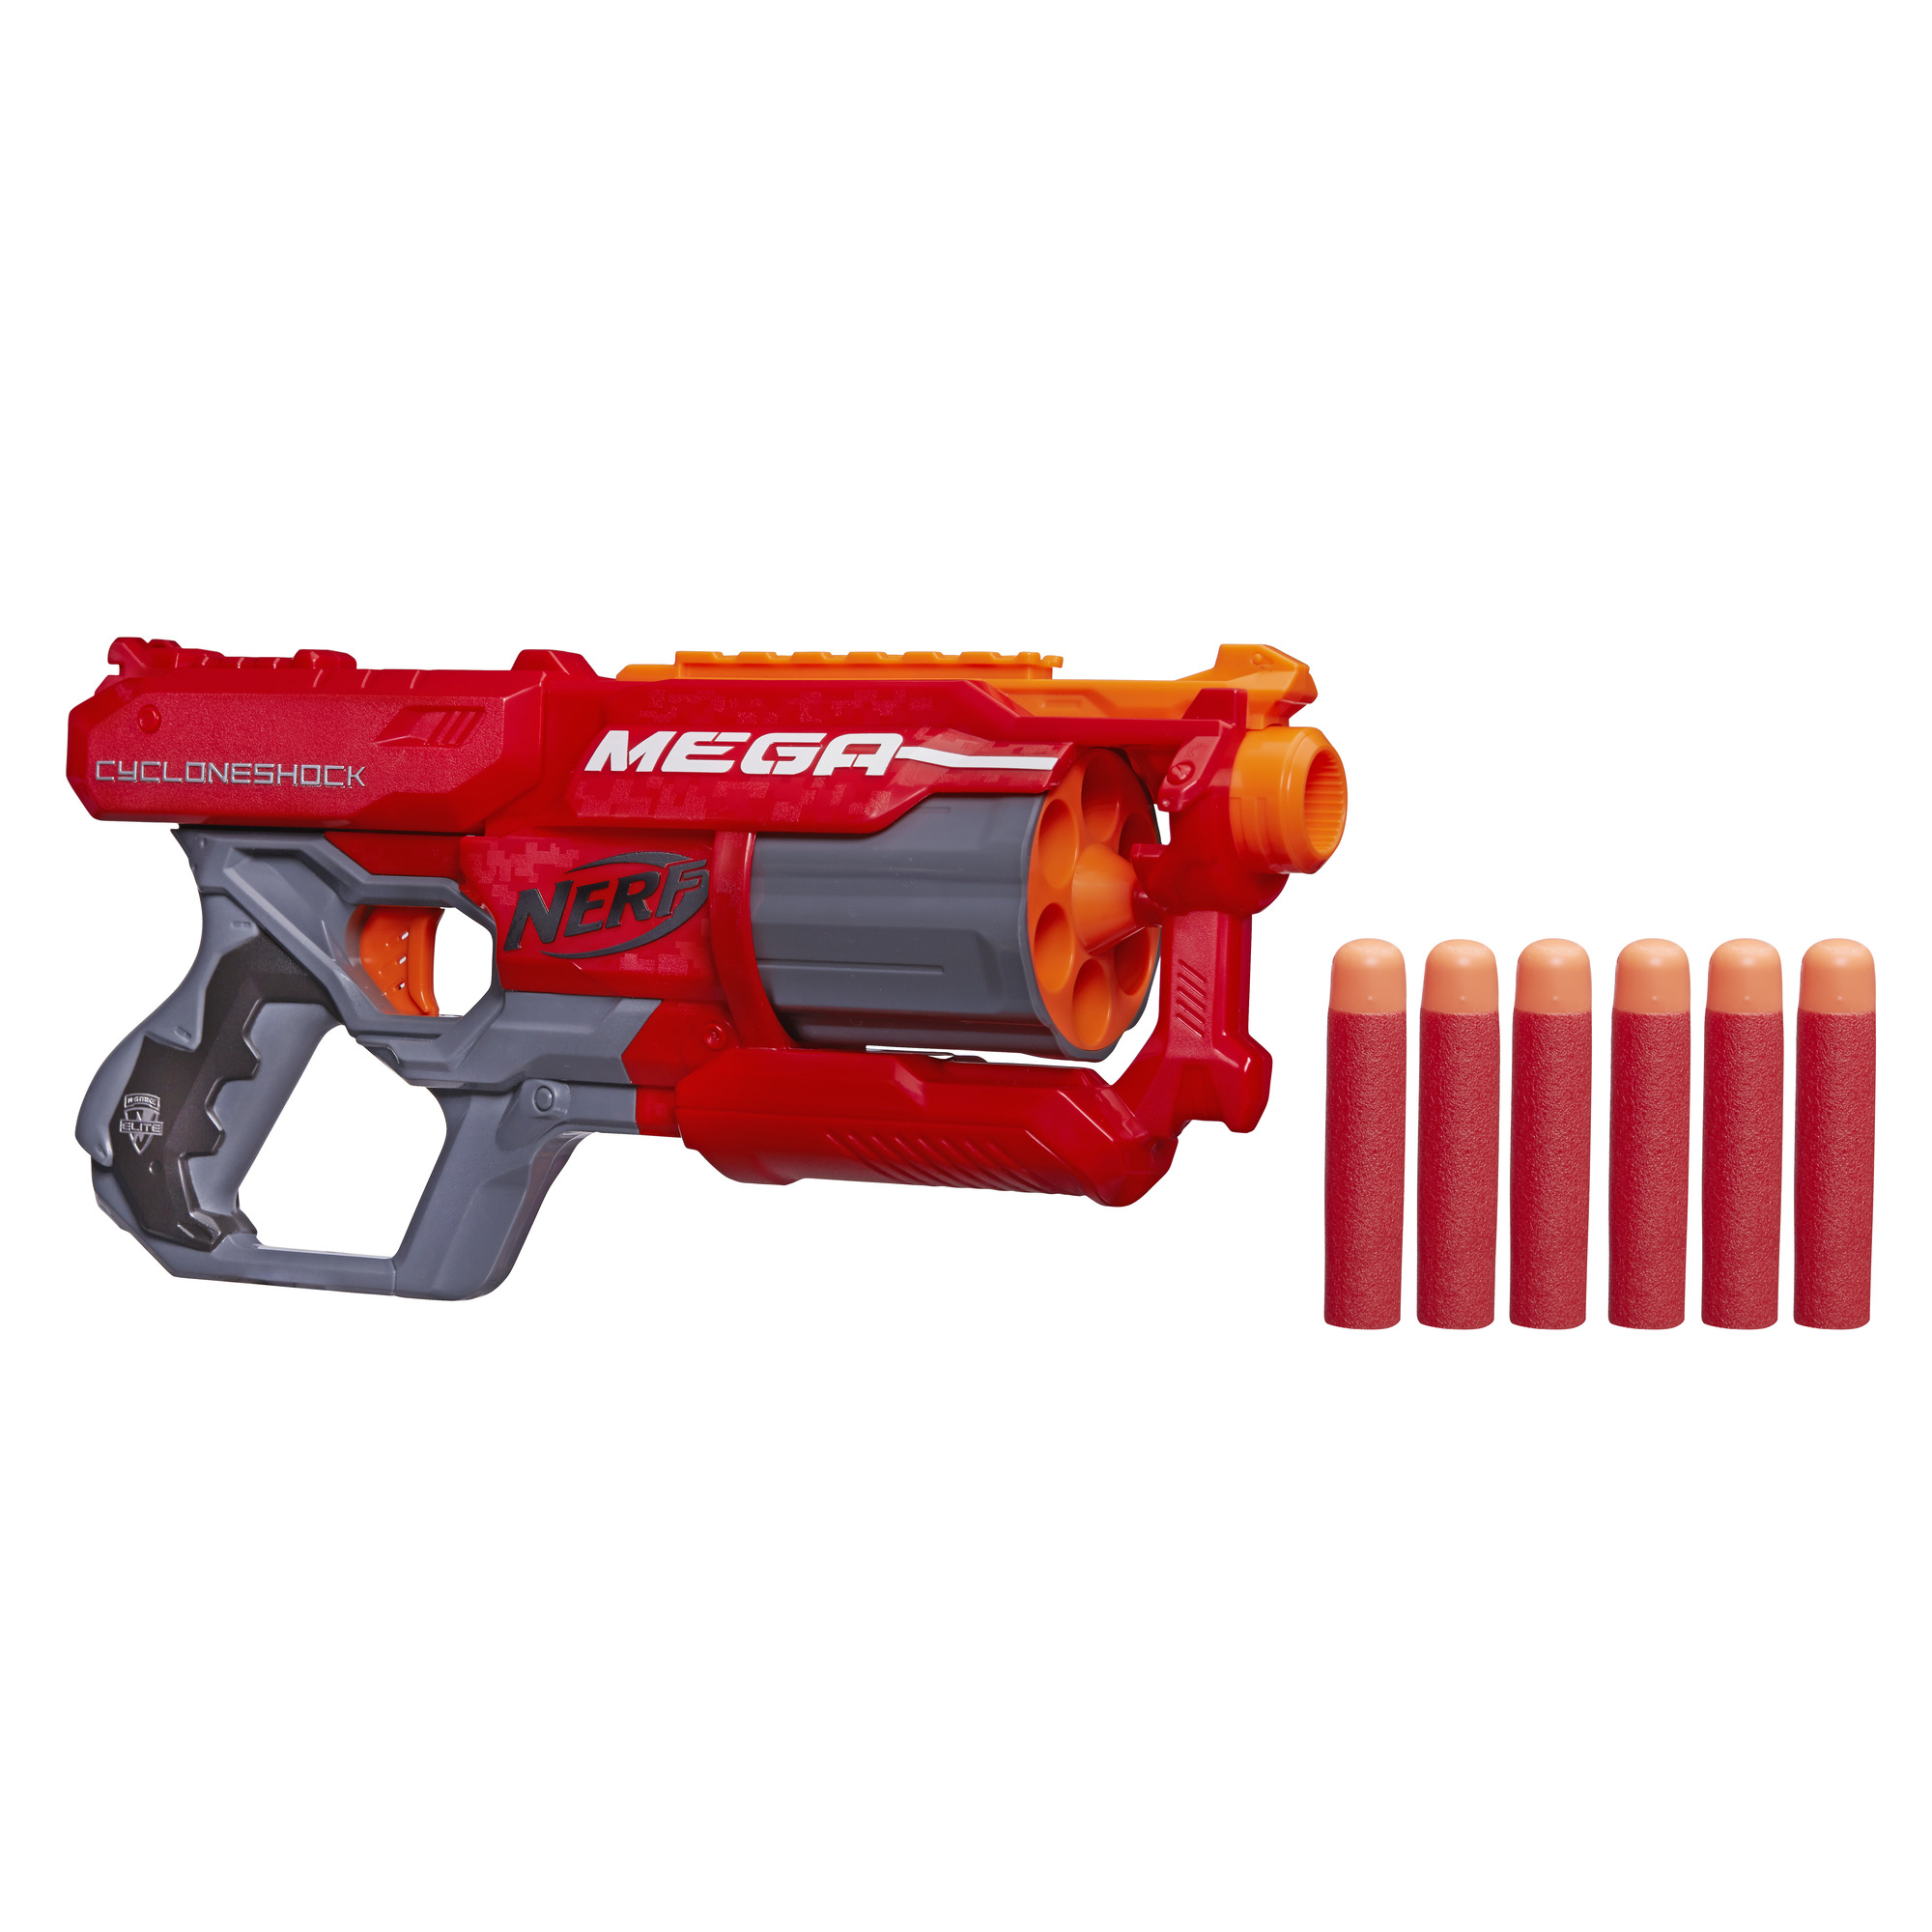 Cycloneshock | Nerf Mega used in our Fortnite Birthday Service